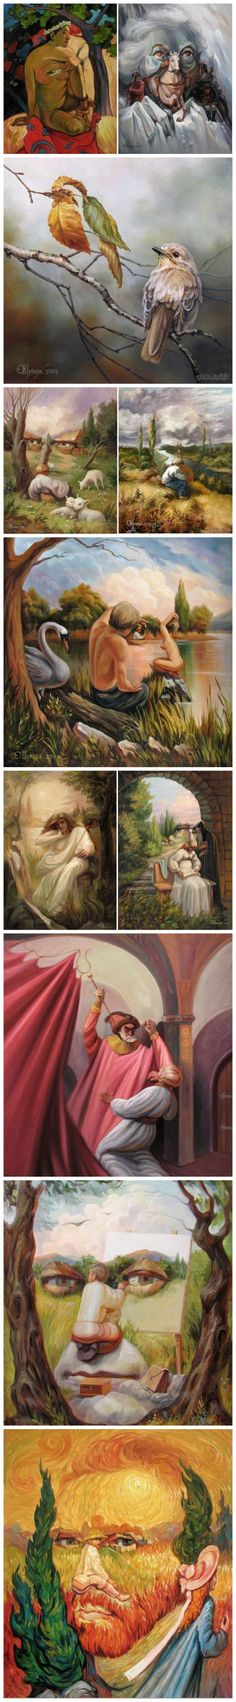 Surrealism - optical illusion by Oleg Shuplyak. Illusion Kunst, Street Art, Art Optical, Optical Illusion Paintings, Optical Illusions Pictures, Graphisches Design, Fantasy Kunst, Wow Art, Surreal Art